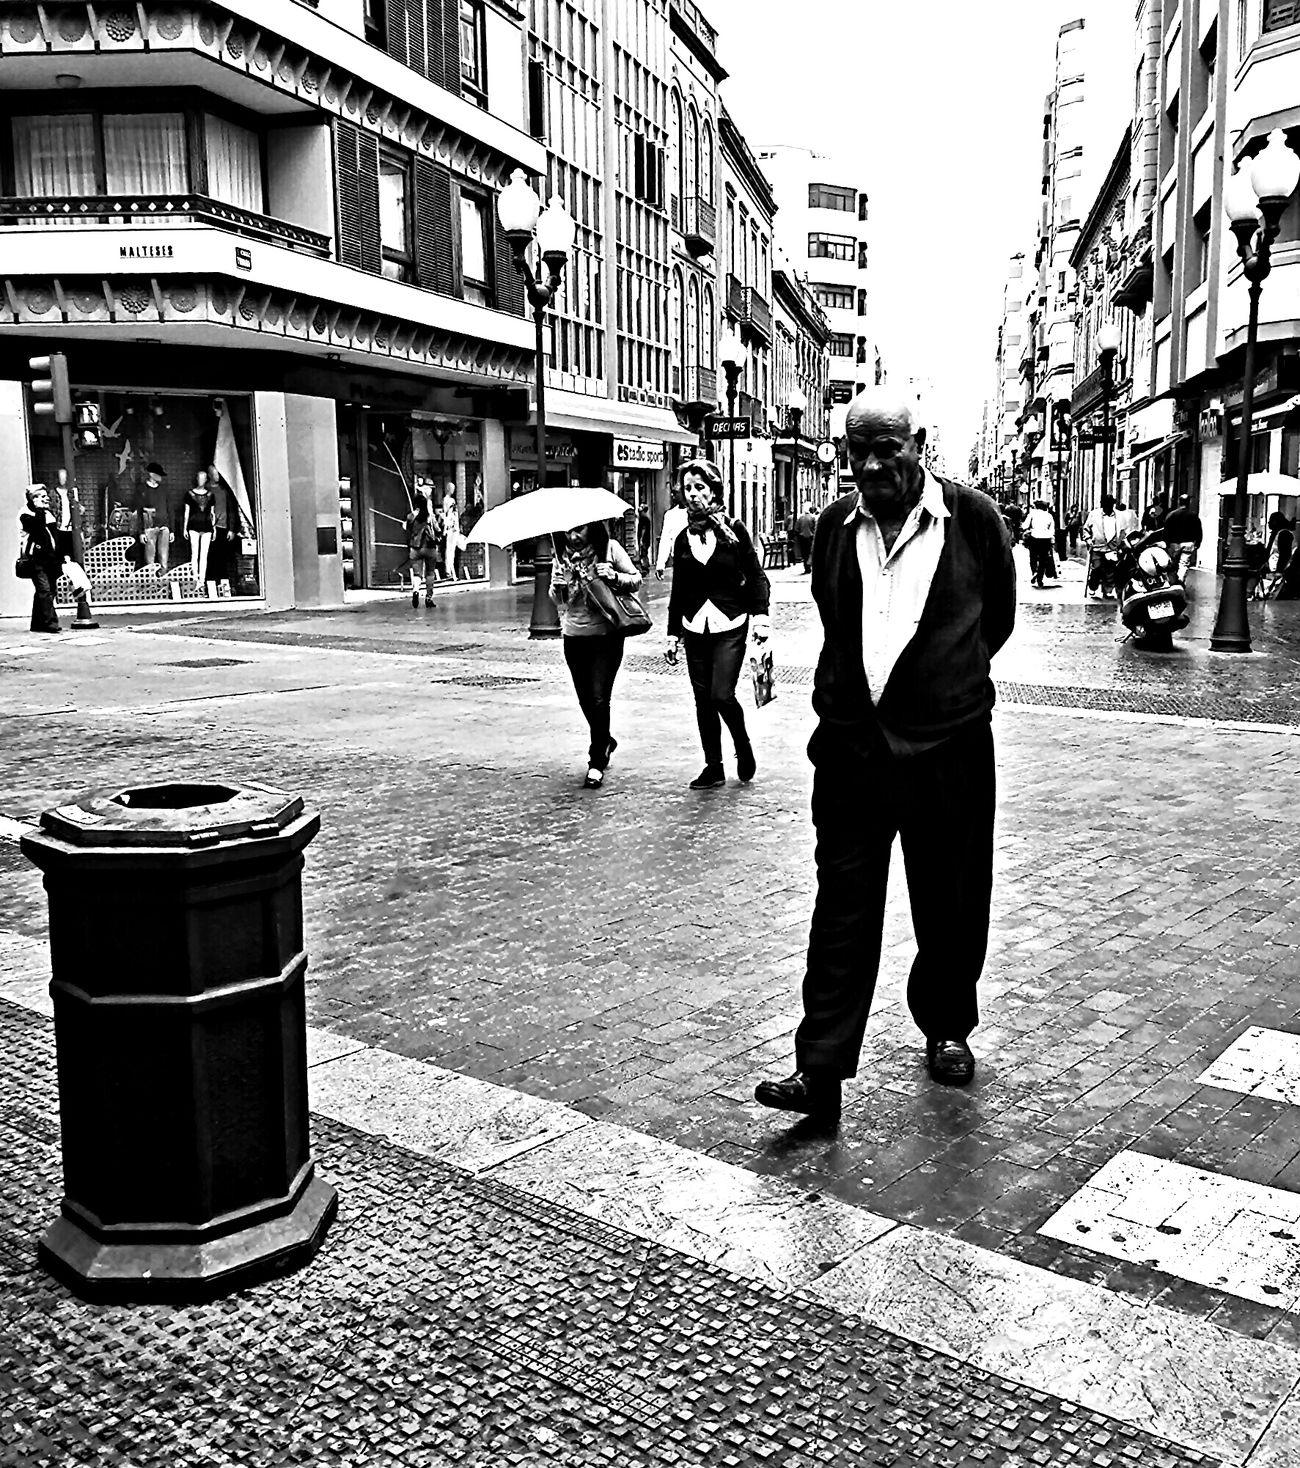 Oldmen/ freetime ...| Señor mayor/ tiempolibre... Architecture Main Street Bw_collection ...Unknow PeoplE...